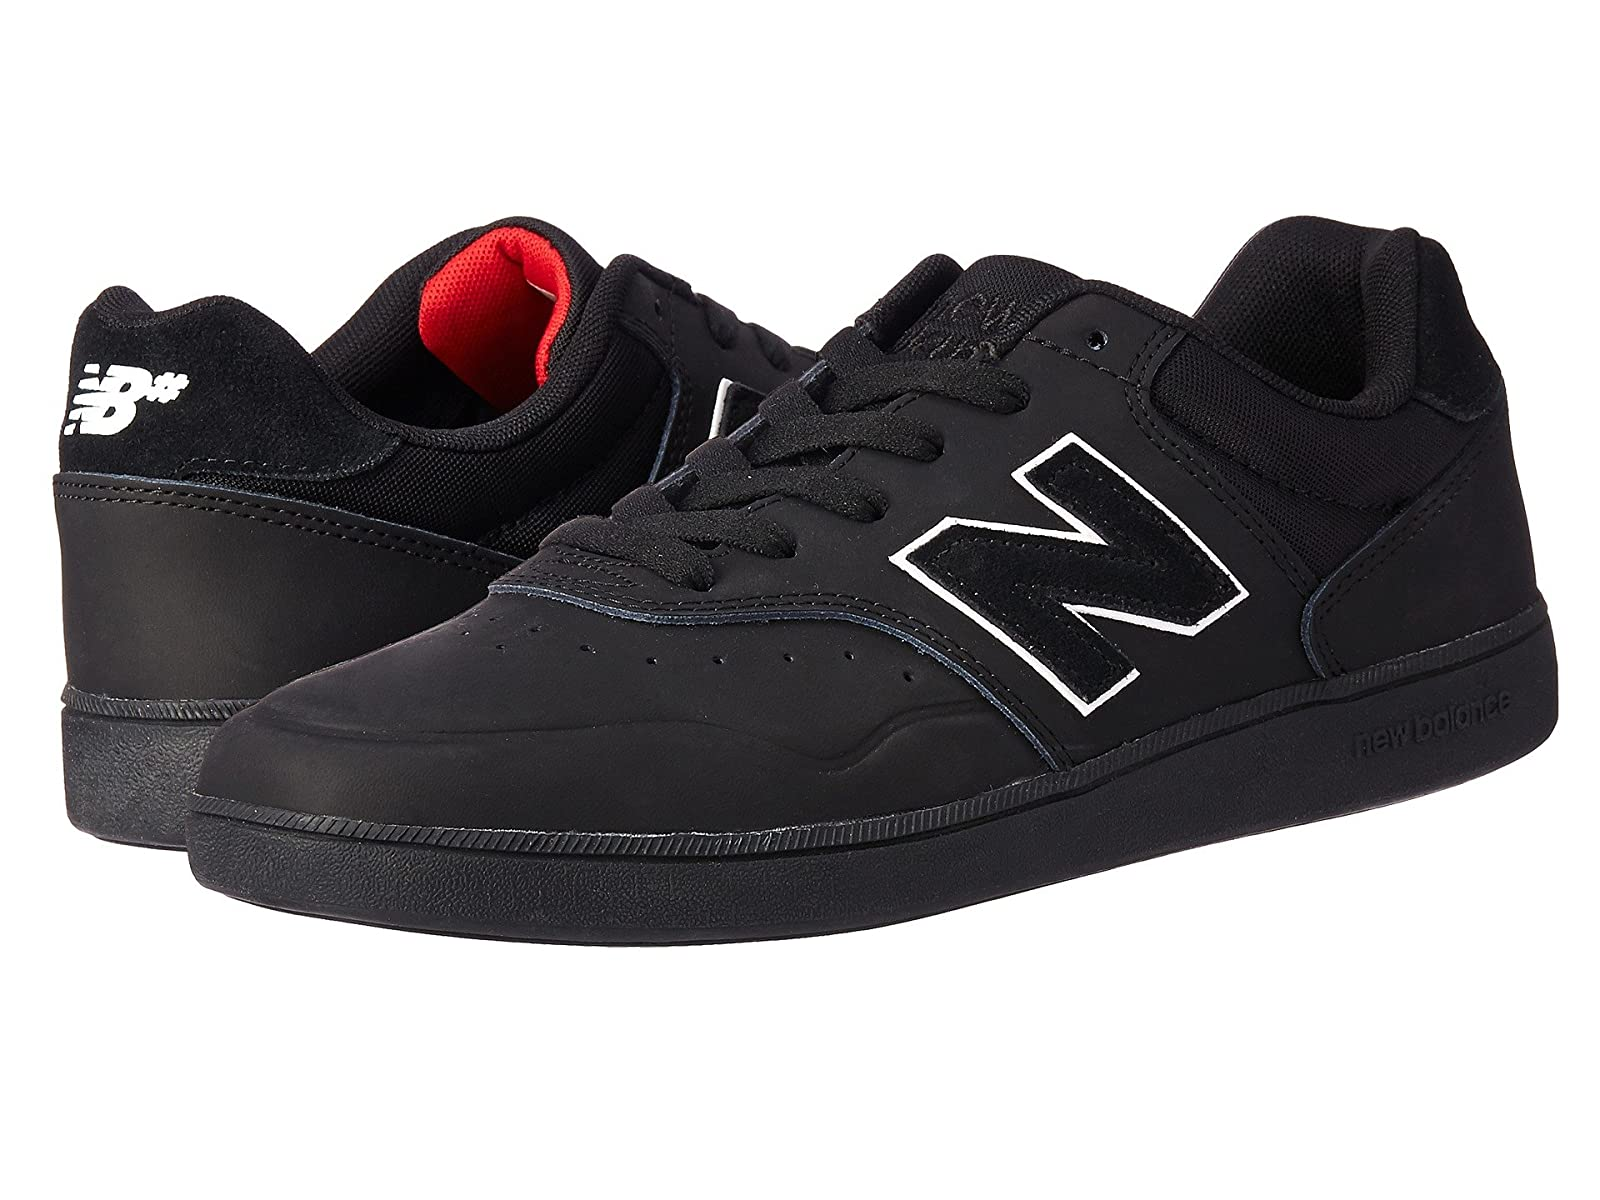 New Balance Numeric NM288Atmospheric grades have affordable shoes